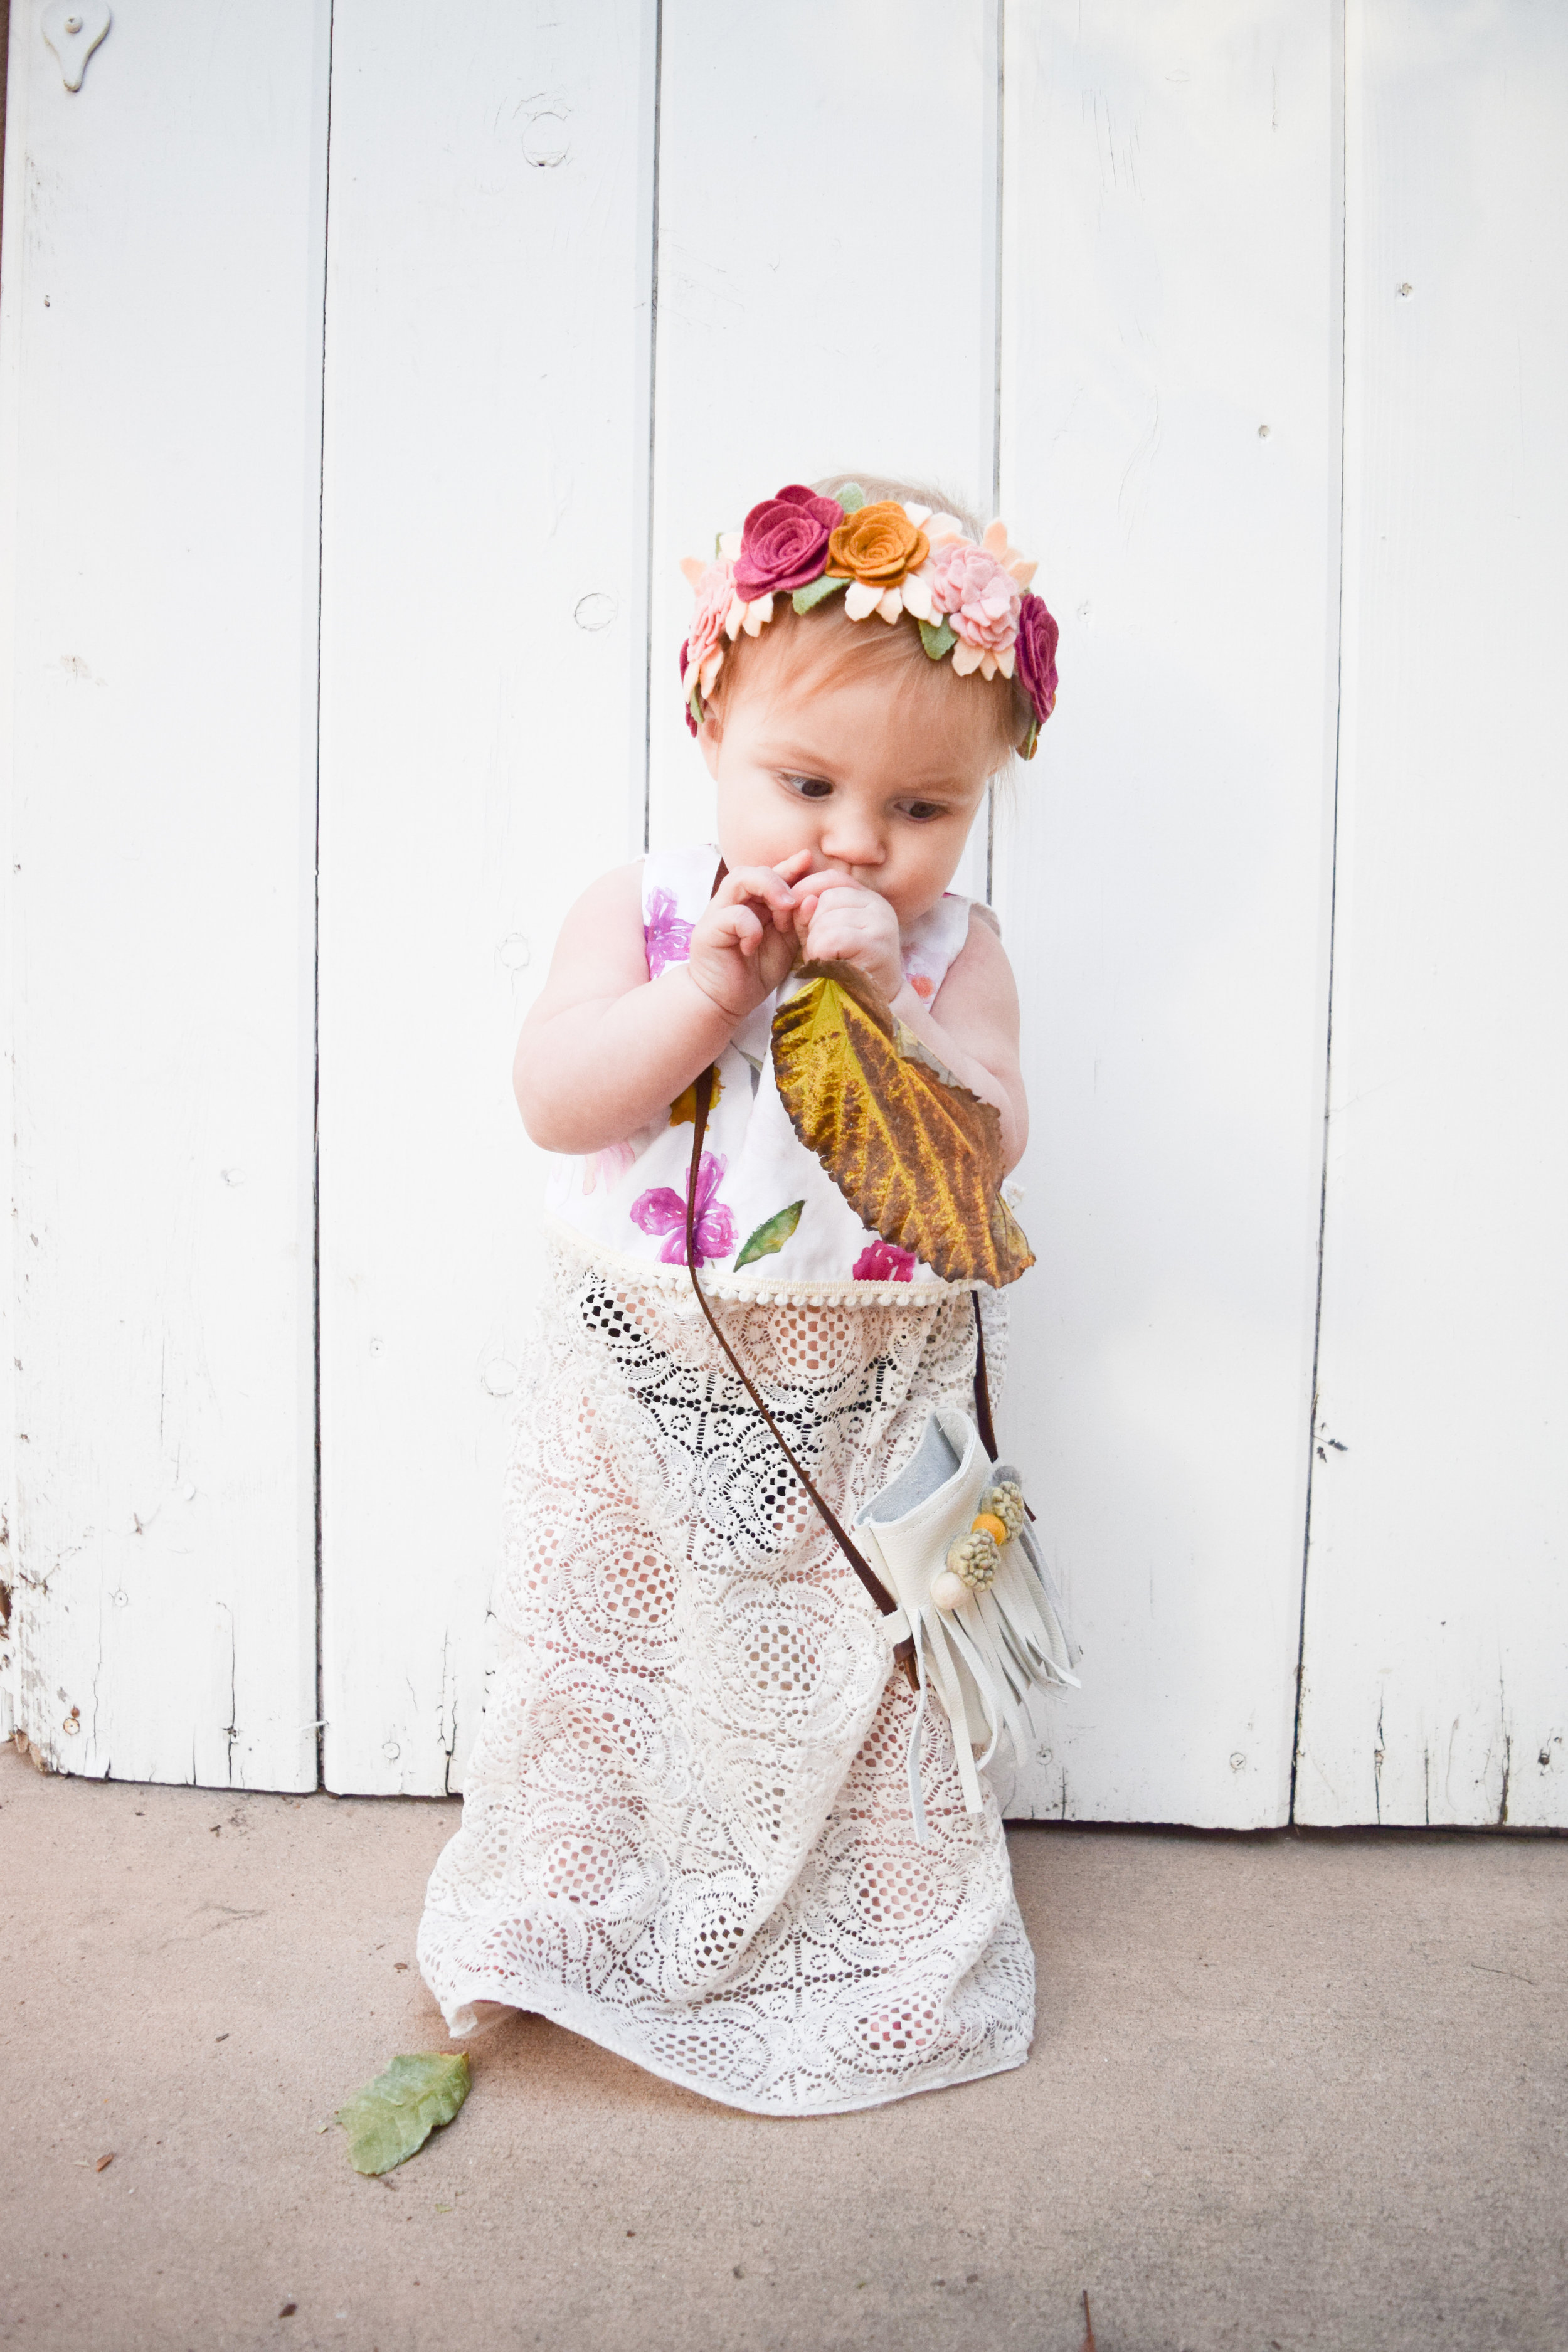 BABY FASHION - Boho Baby Outfit - Lace Baby Skirt, Floral Baby Crop Top, Baby Flower Crown